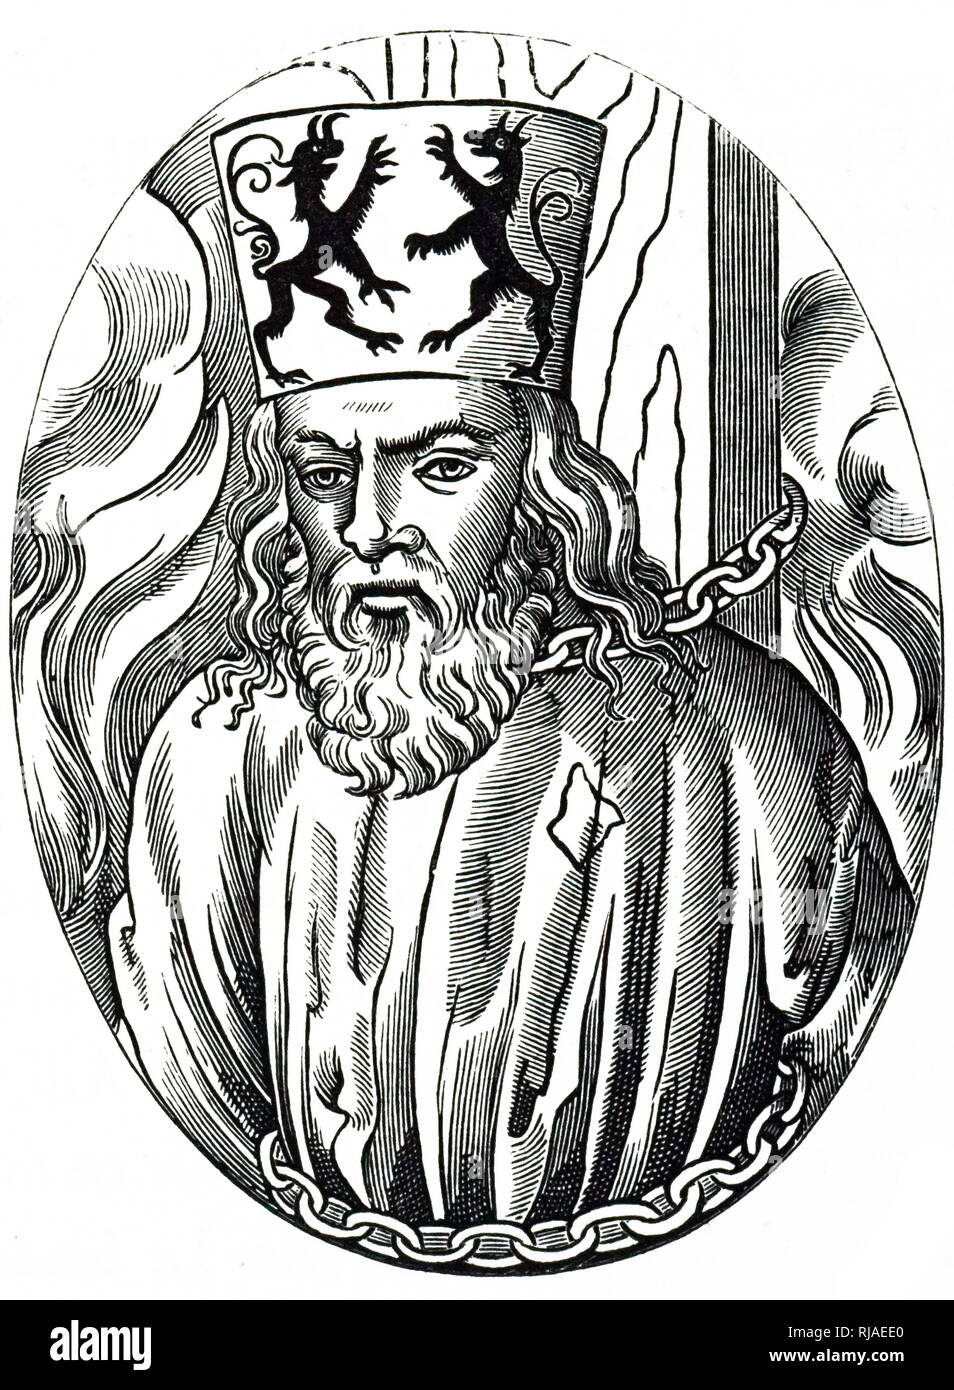 Woodcut portrait of the death of Jerome of Prague (1379 - 1416), a Czech scholastic philosopher, theologian, reformer, and professor. Jerome was one of the chief followers of Jan Hus and was burned for heresy at the Council of Constance. - Stock Image